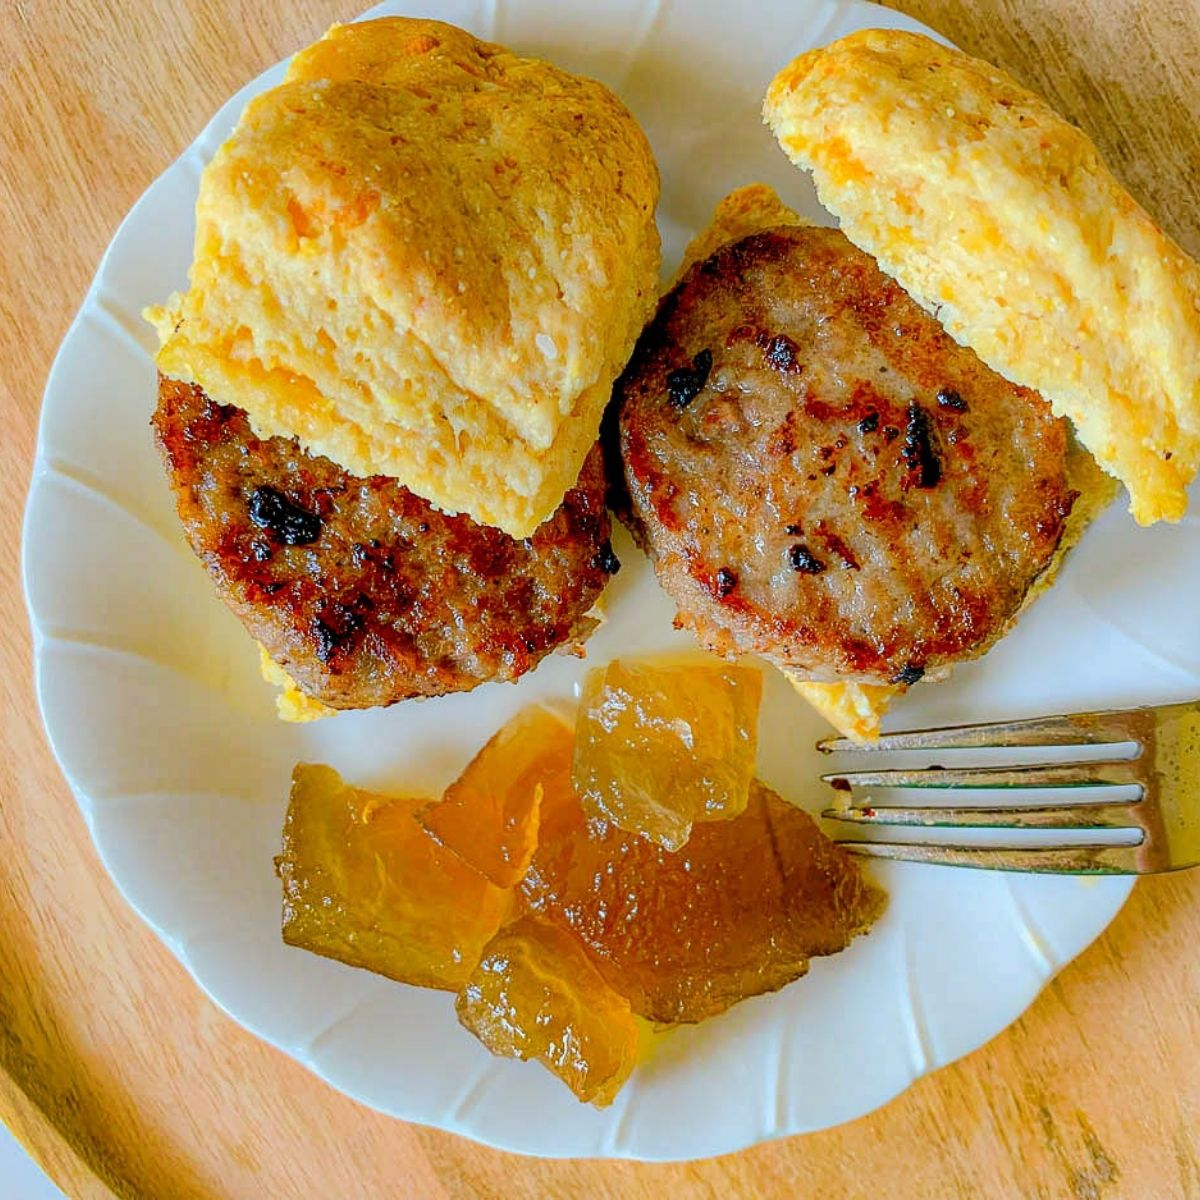 featured image for sausage on a biscuit with watermelon rind preserves